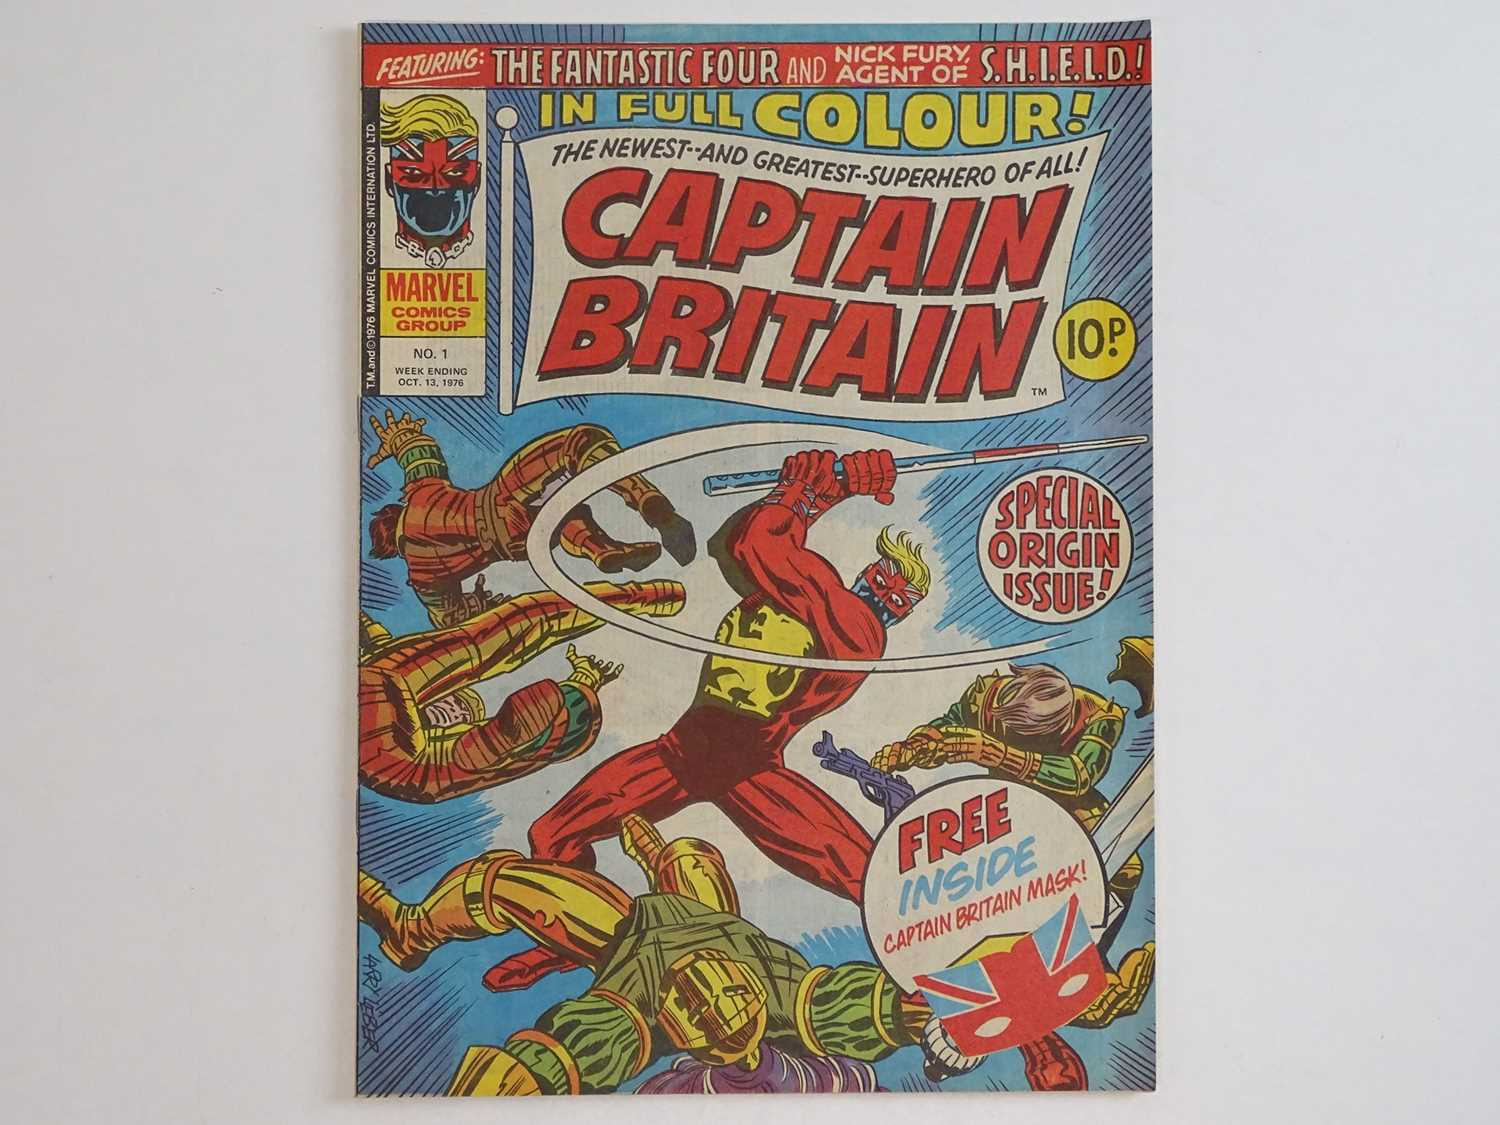 CAPTAIN BRITAIN #1 - (1976 - BRITISH MARVEL) - Origin and First appearance of Captain Britain - Image 2 of 12